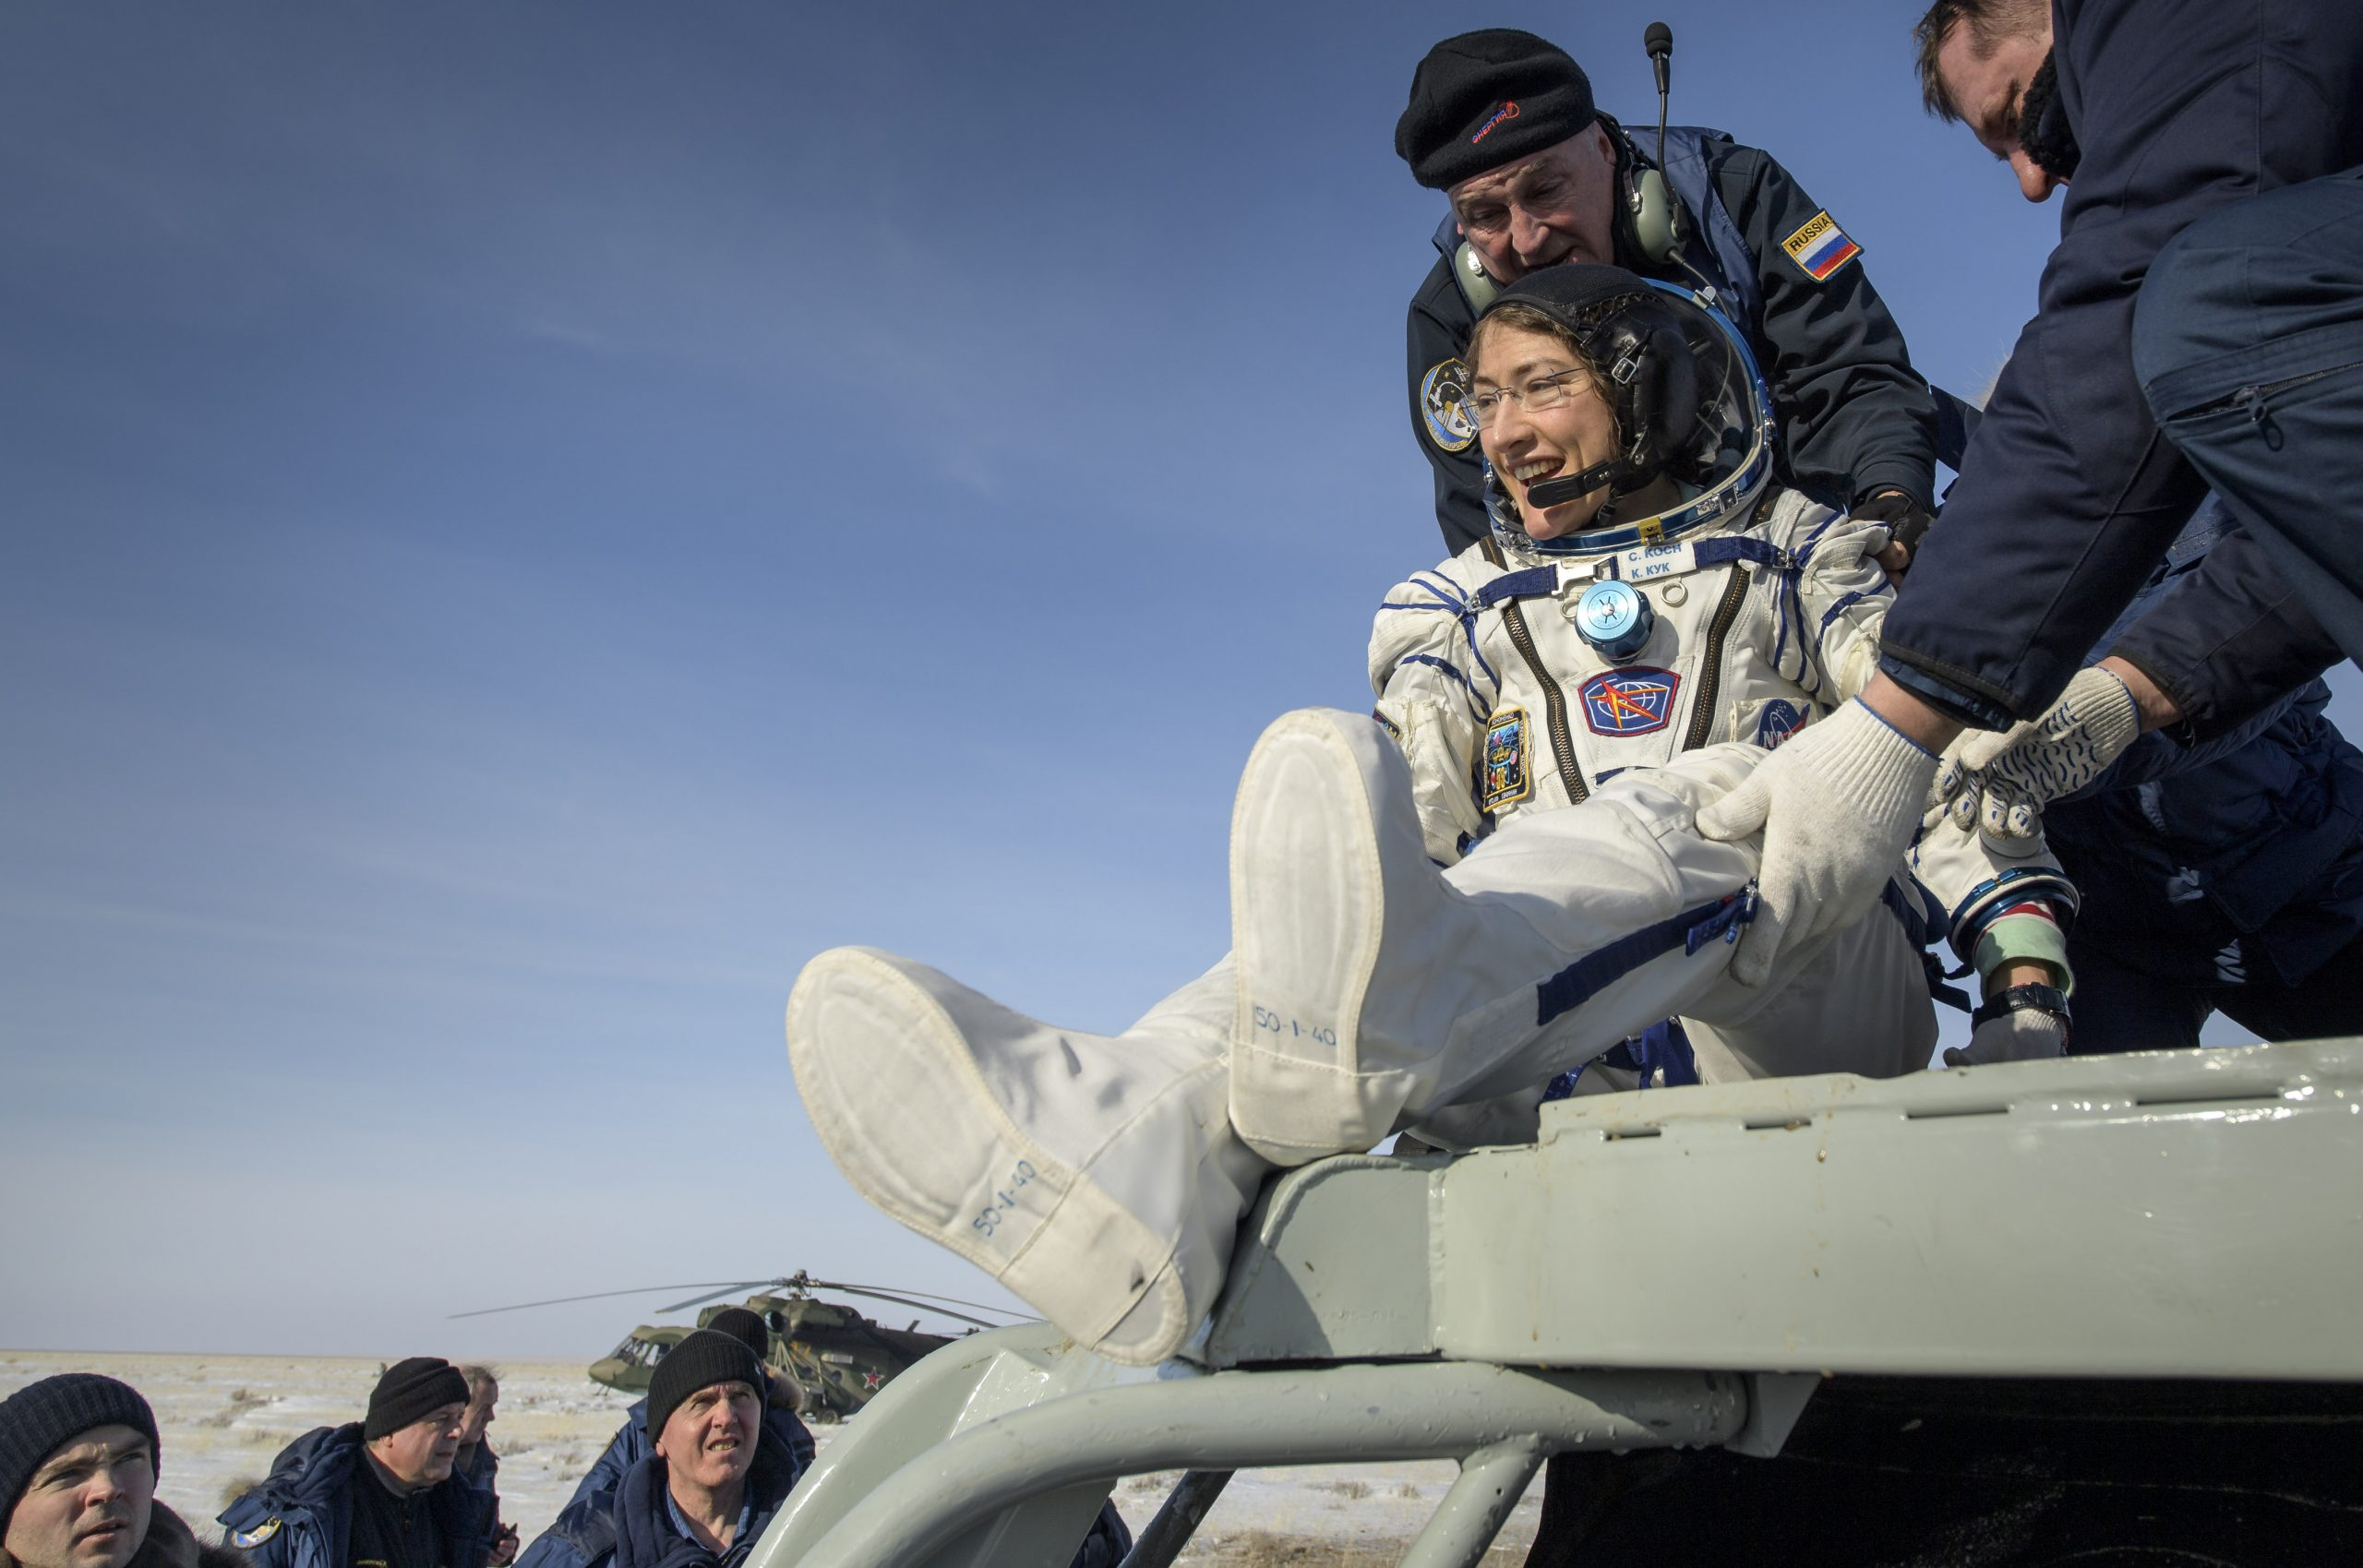 Astronauts Return Home From Space